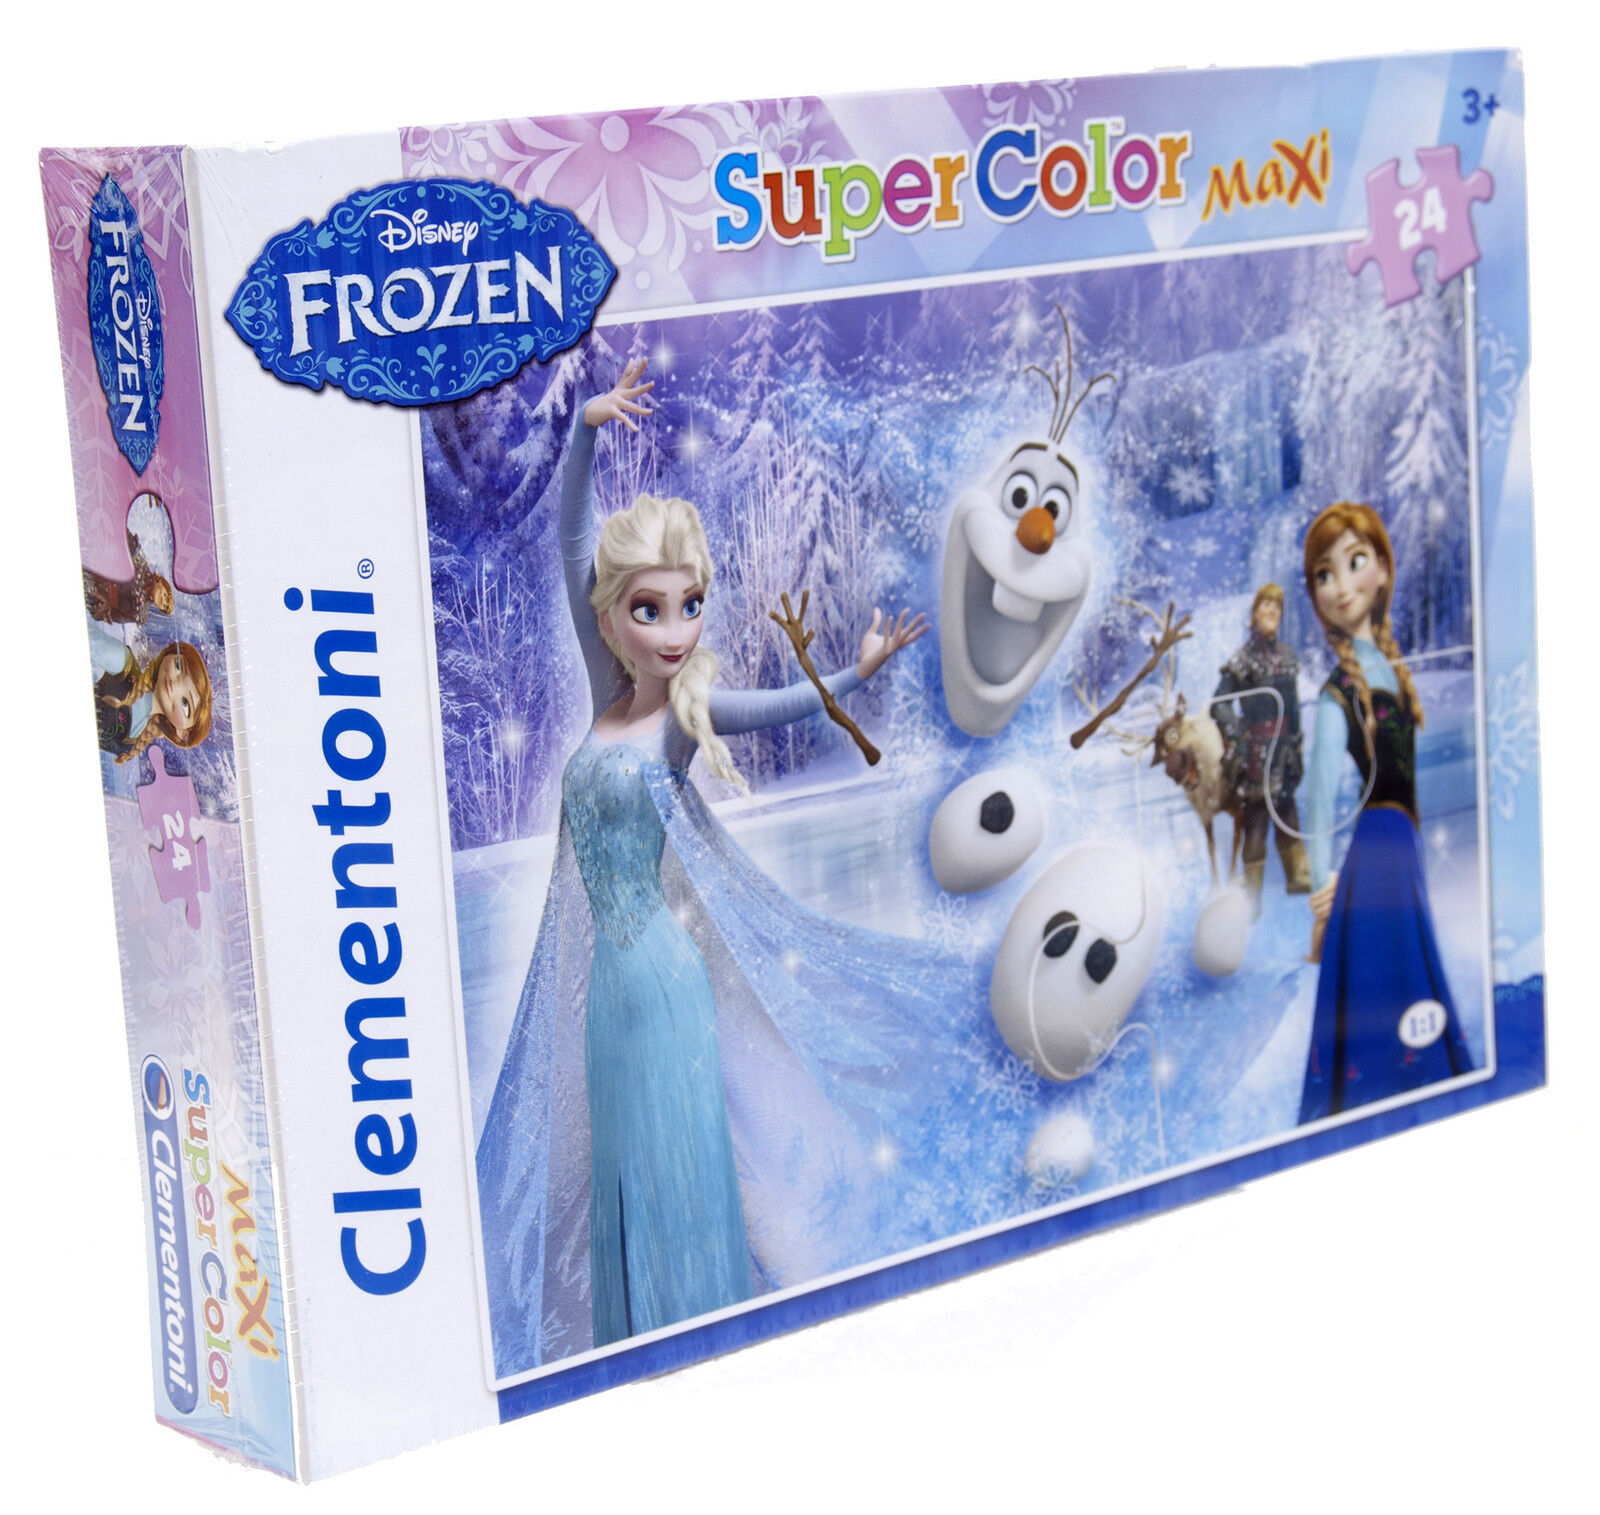 Galleria farah1970 - MADE IN ITALY ITALY ITALY Puzzle Clementoni FROZEN 24 PEZZI CLE24461 c0e985